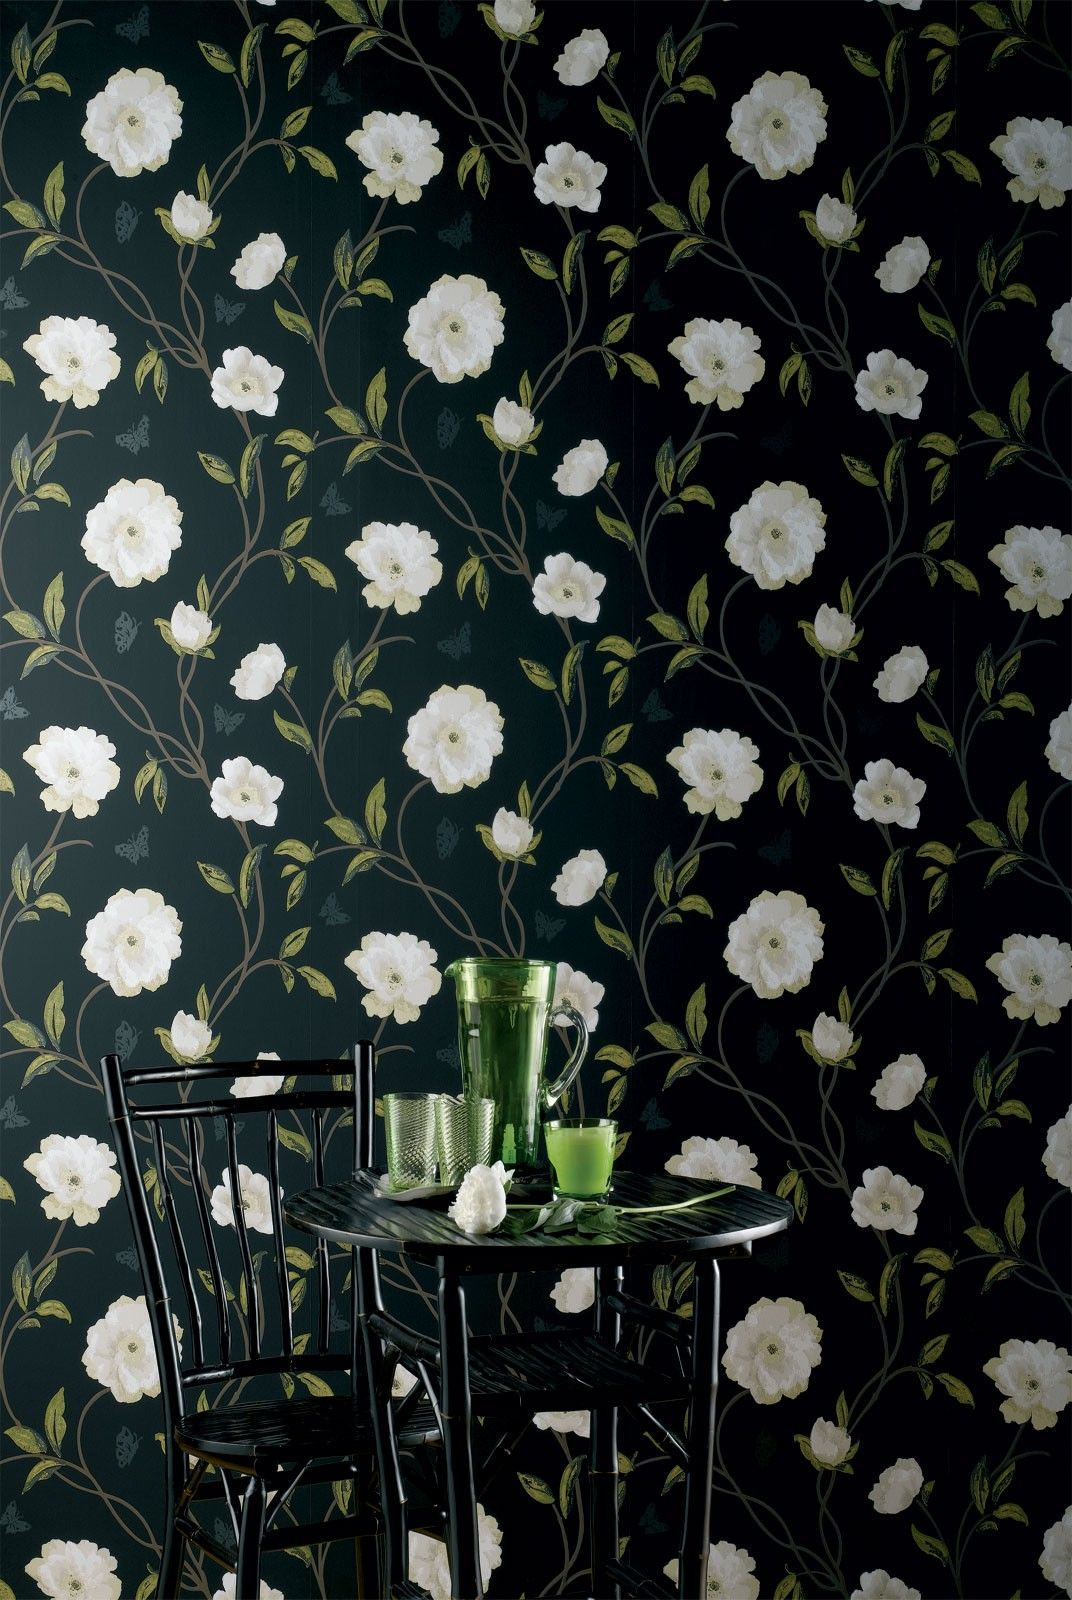 Rosslyn Fabric by Nina Campbell distributed by Osborne